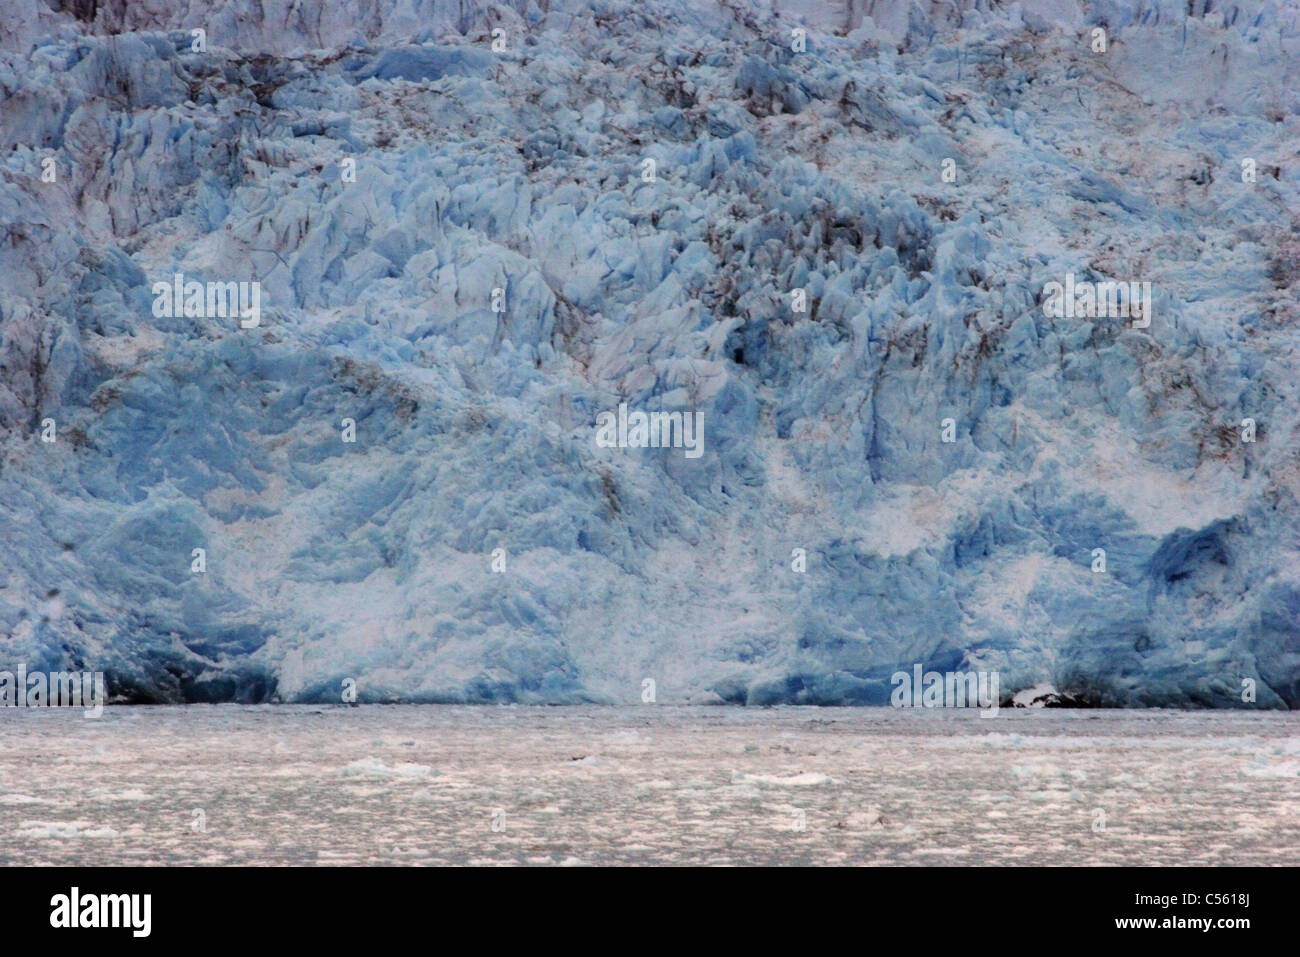 Glacier at ocean side, Amalia Glacier, Bernardo O'Higgins National Park, Patagonia, Chile - Stock Image